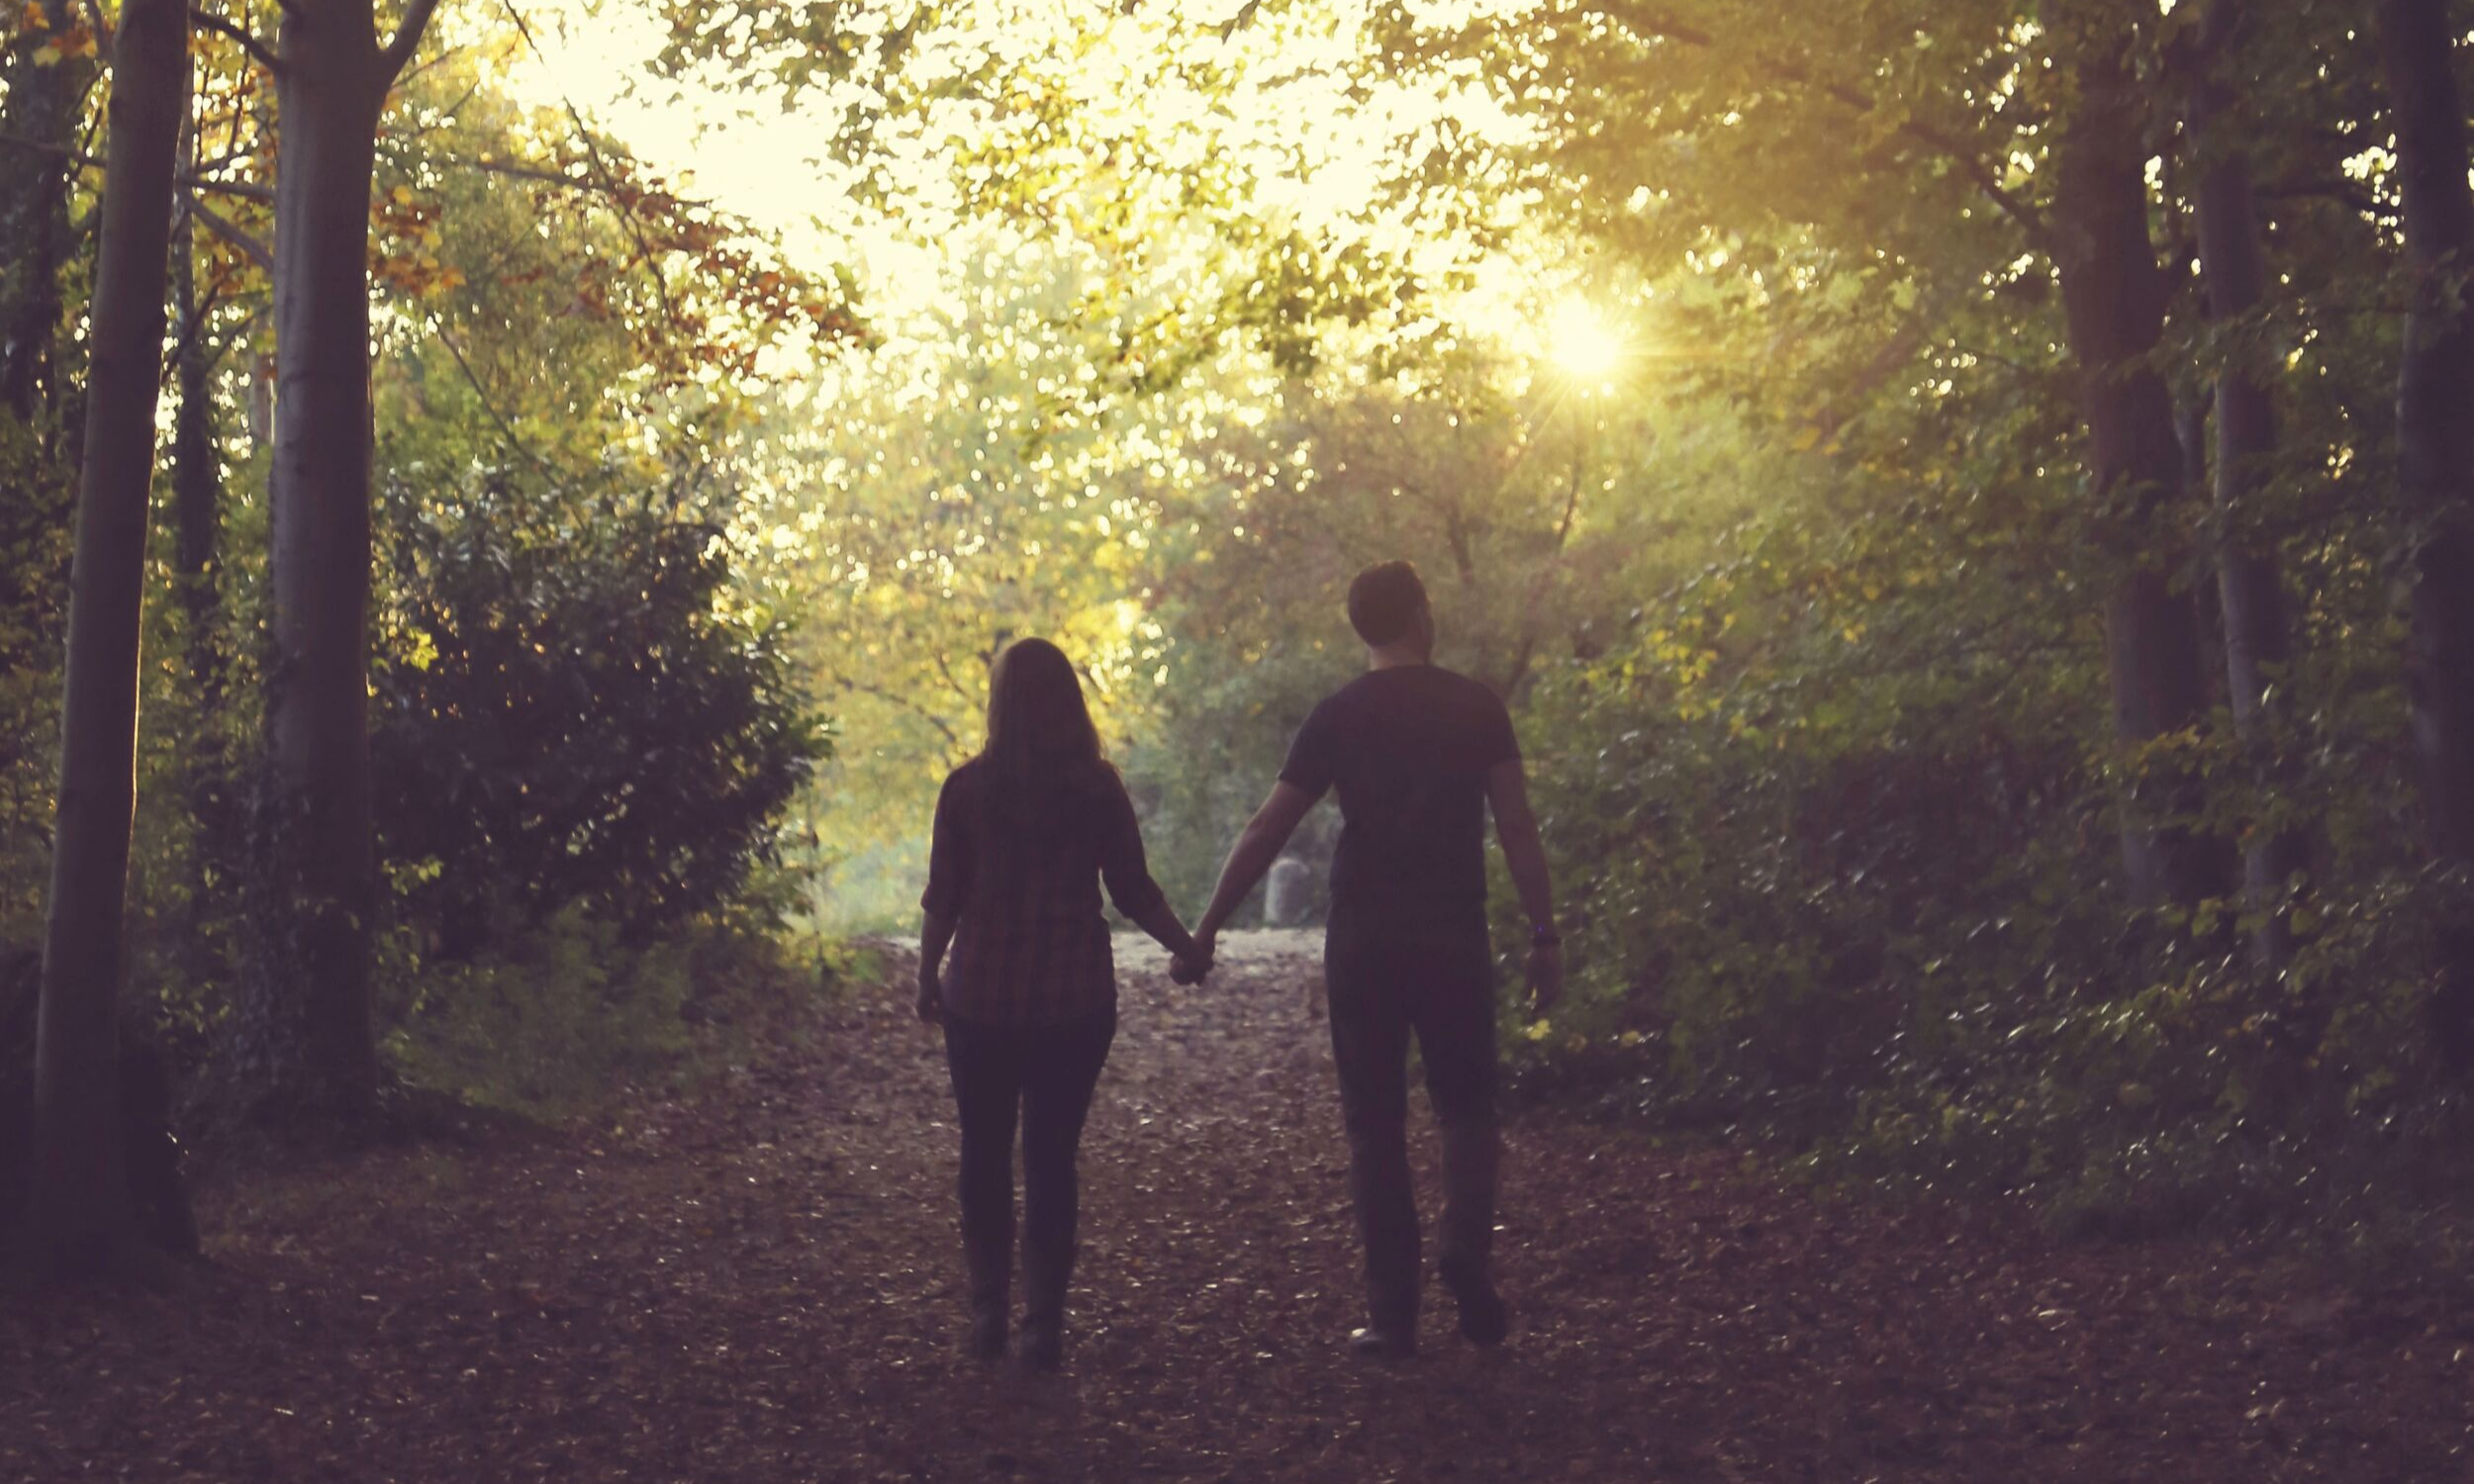 Couples Counseling - I enjoy working with couples to try and find solutions to help improve their relationships and find the clarity and confidence needed to make the next step.My services include counseling couples during the many stages of a relationship, including: Couples Counseling, Discernment Counseling, and Collaborative Divorce Coaching.